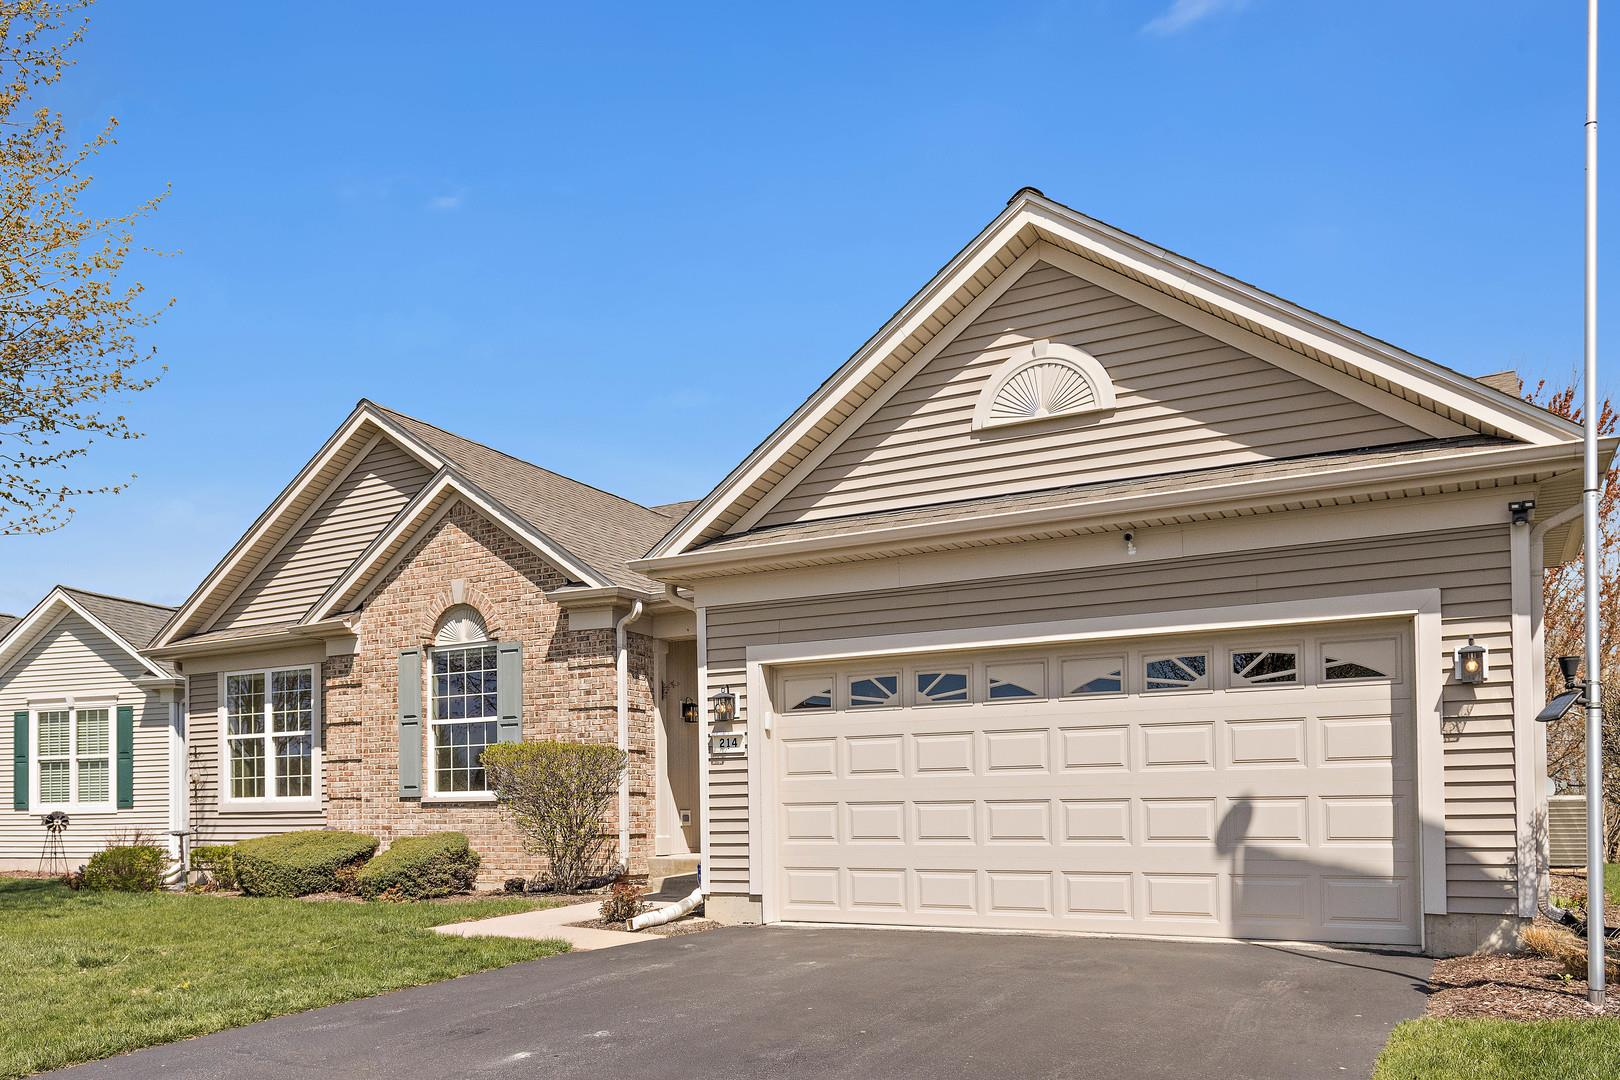 214 HONORS Drive, Shorewood, IL 60404 - #: 11057122